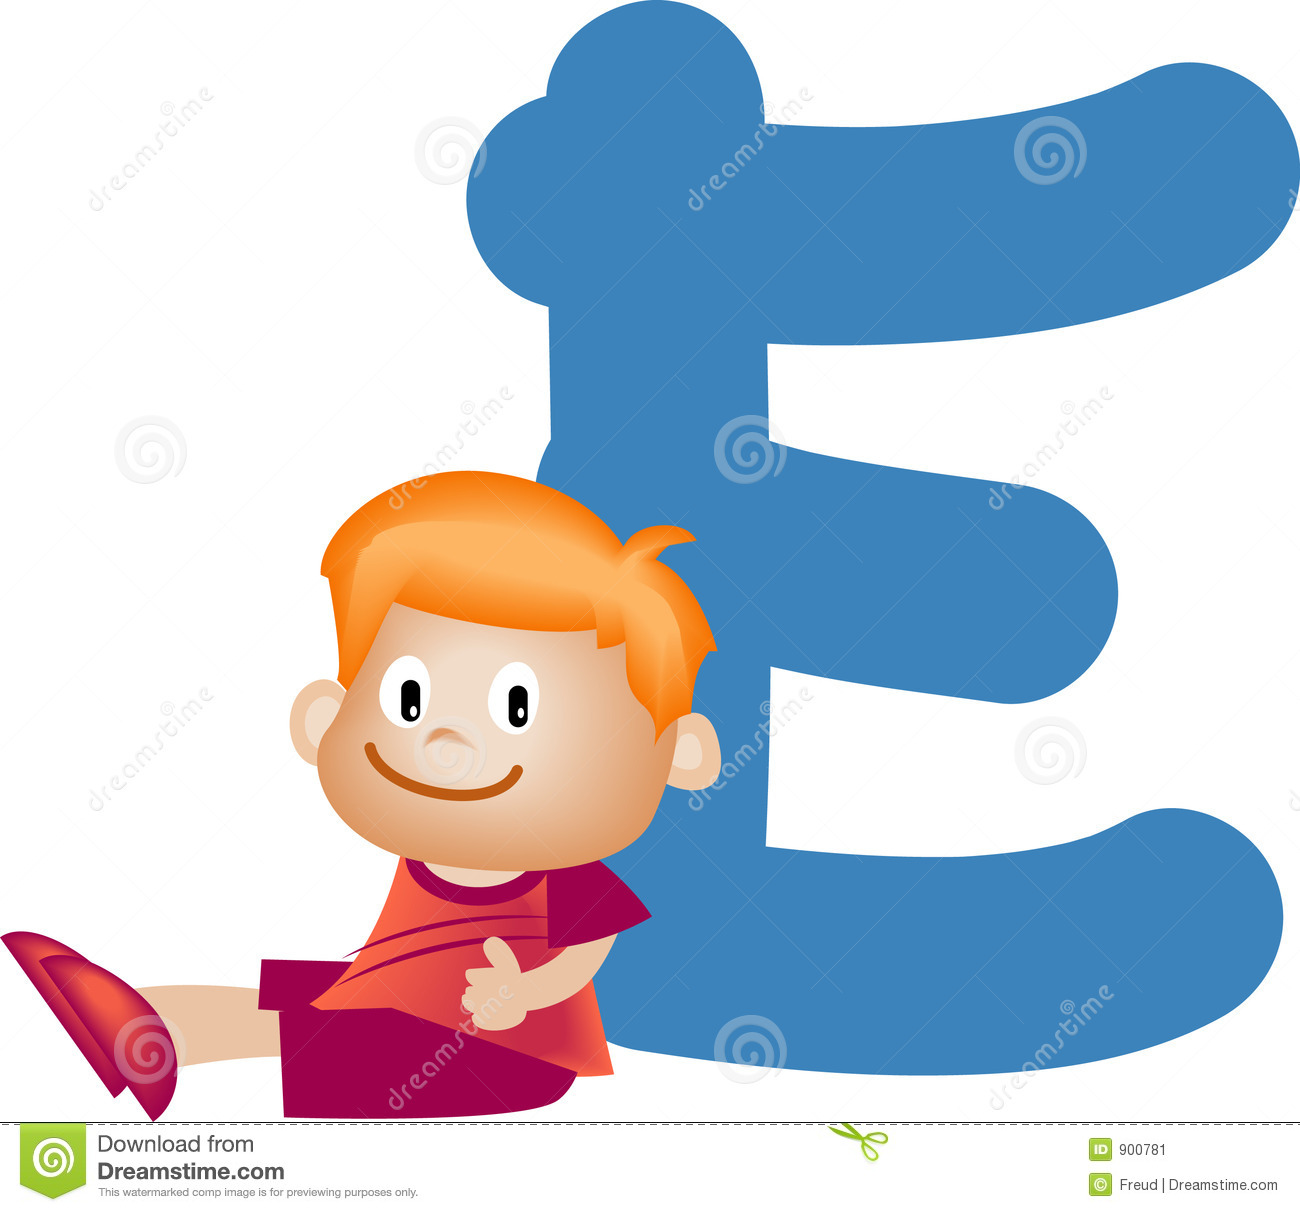 What The Words Start With Letter E